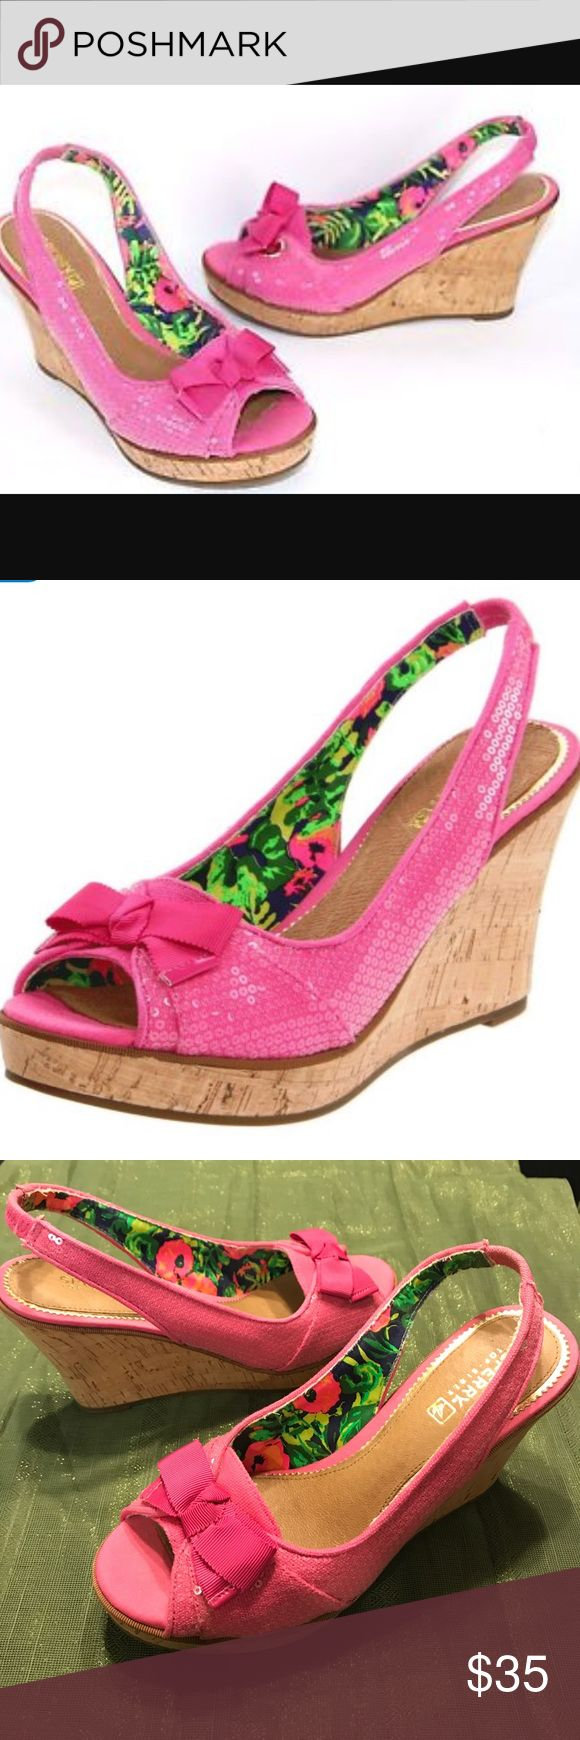 Pink sperry wedges Sperry top sider neon  pink southsea wedges  Size 6  New without box Sperry Top-Sider Shoes Wedges